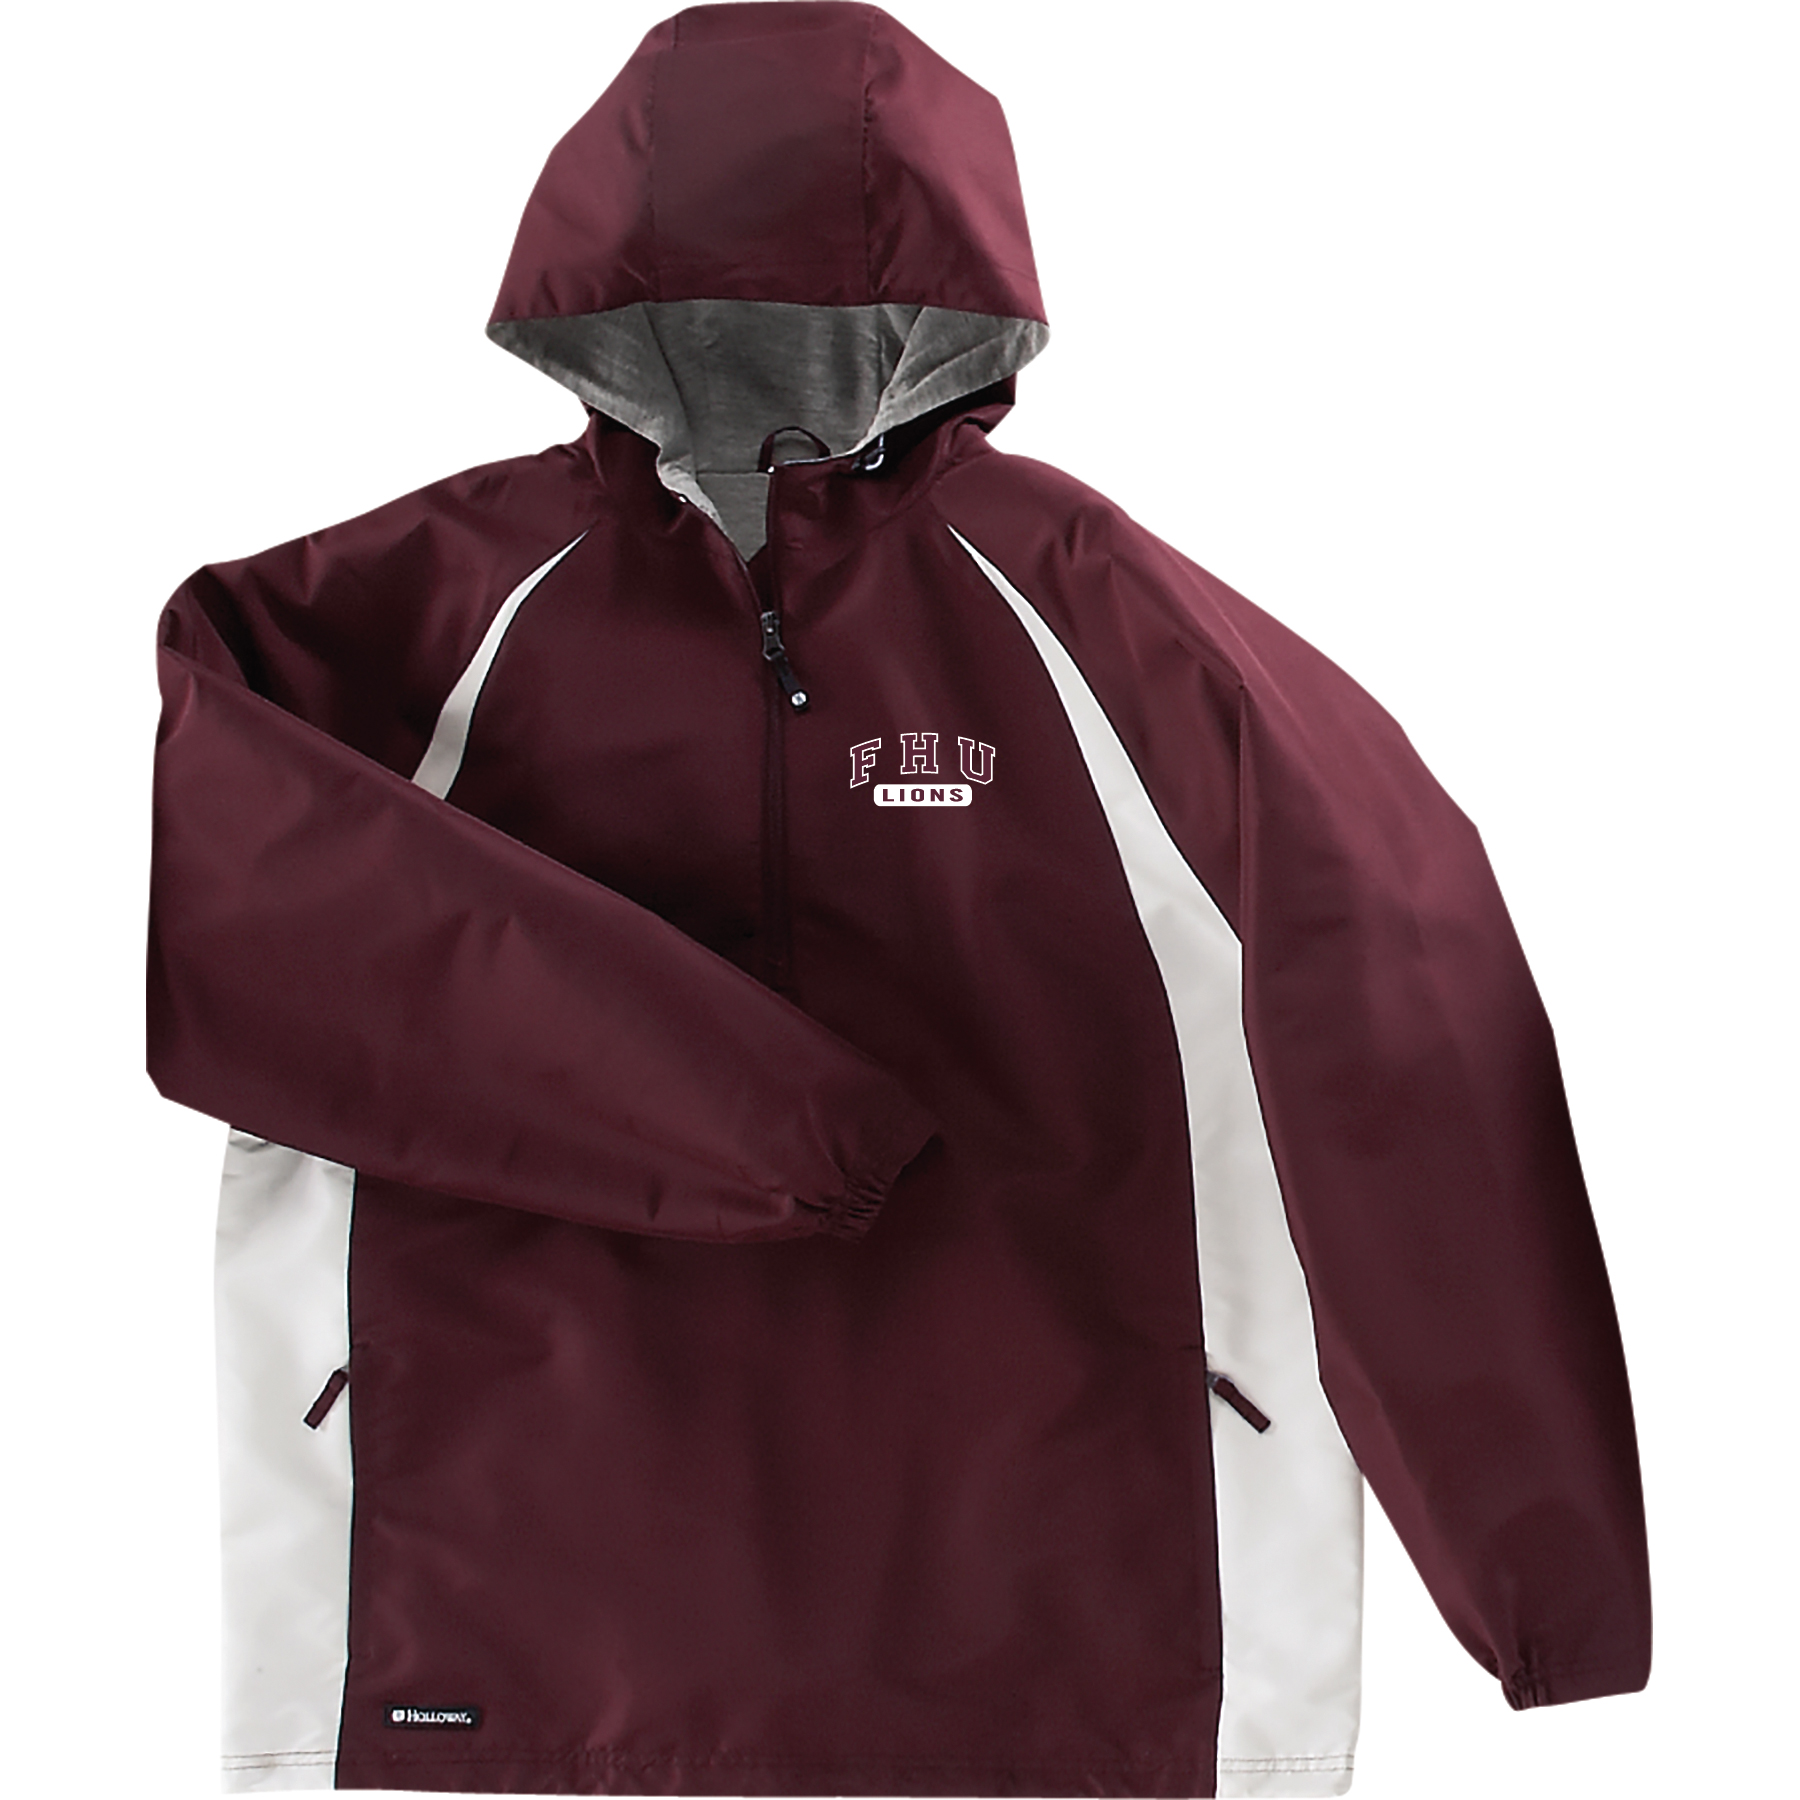 FHU Hurricane Jacket